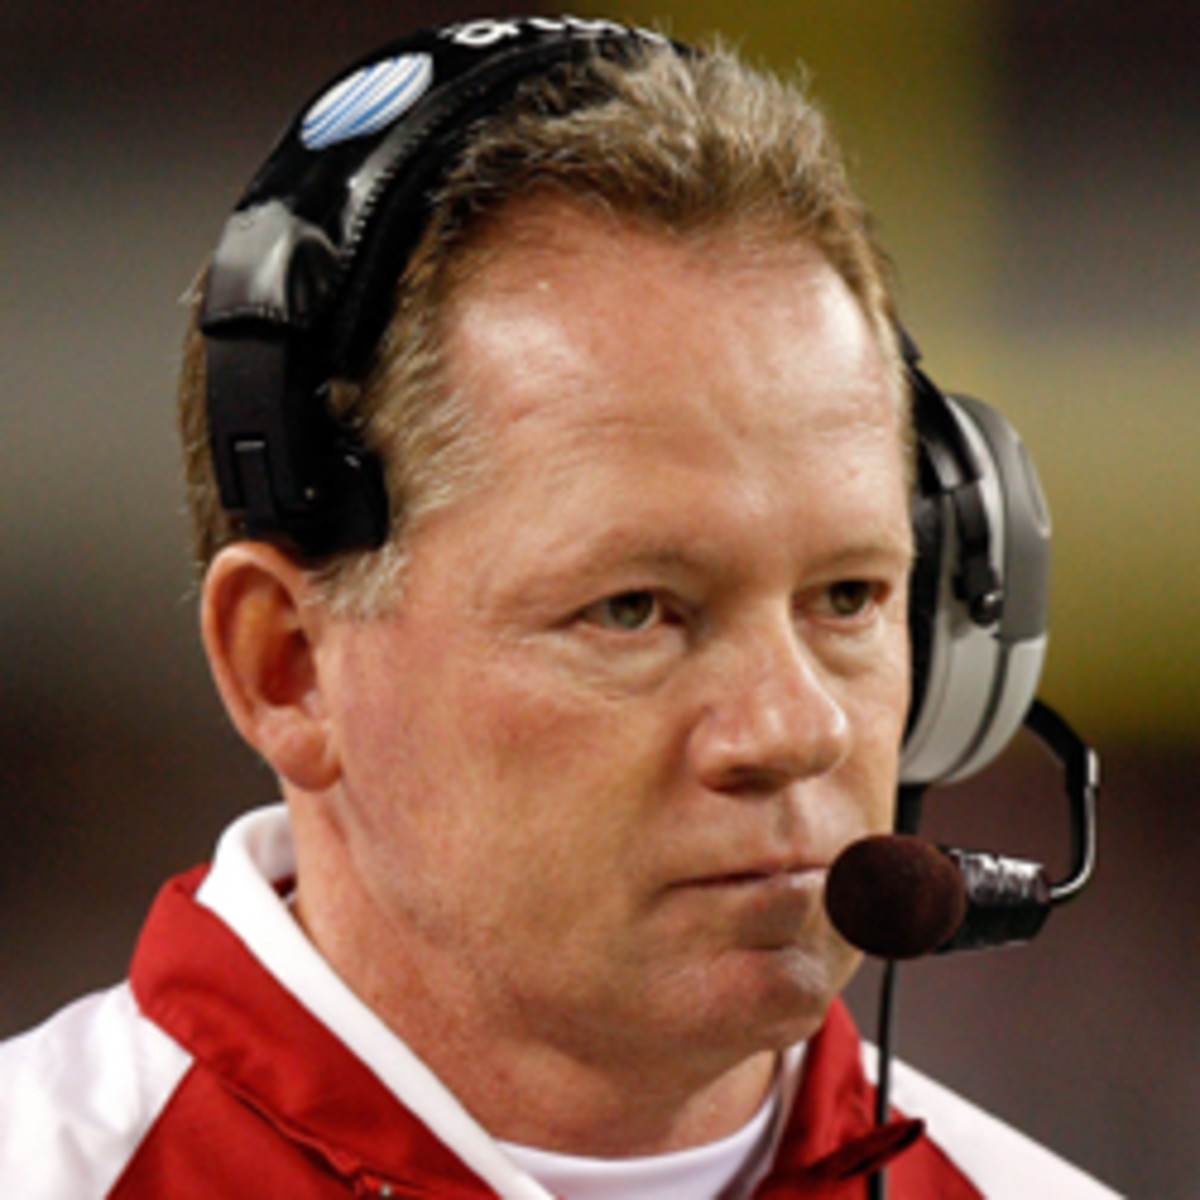 Bobby-Petrino-Getty